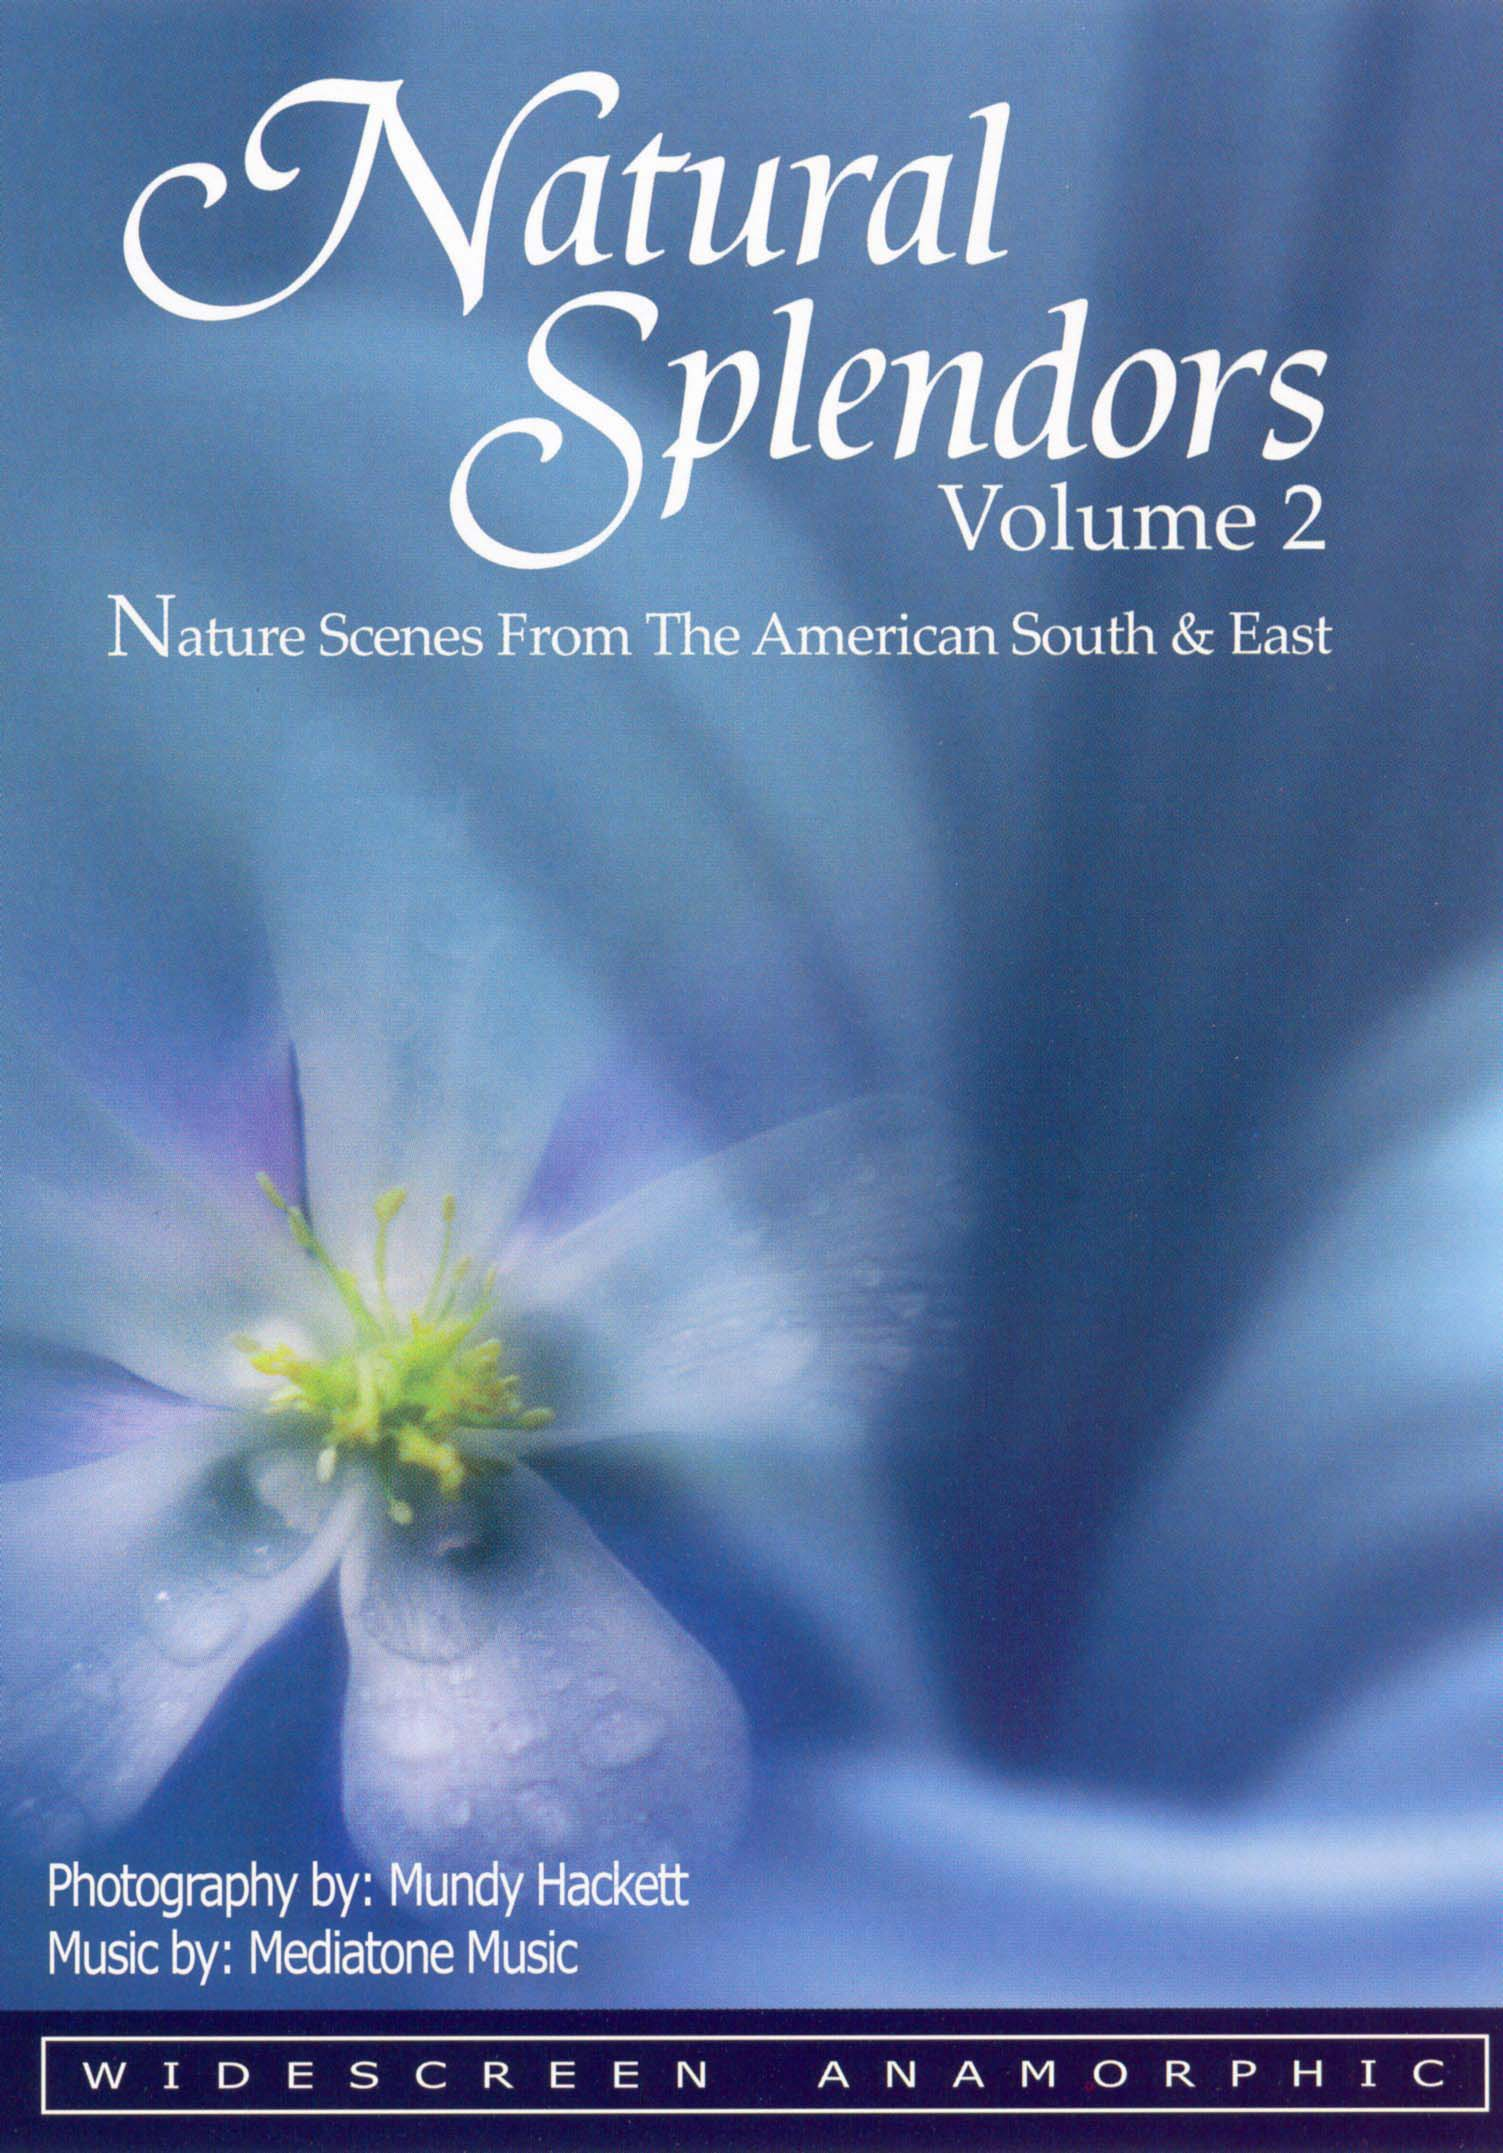 Natural Splendors, Vol. 2: Nature Scenes from the American East & South